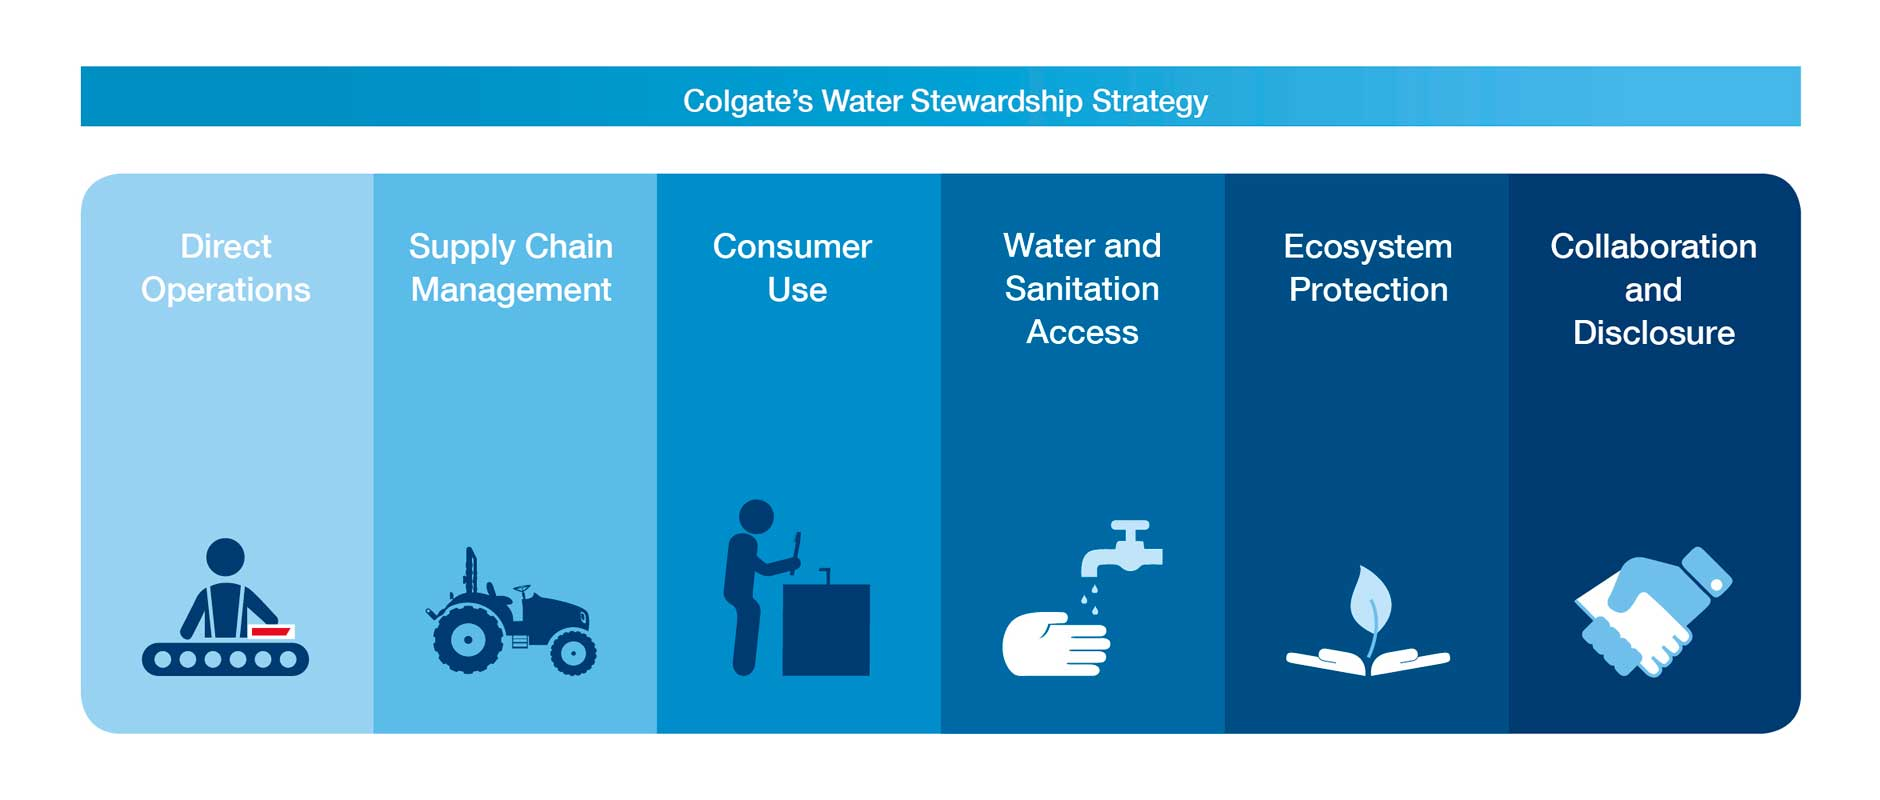 Colgate Water Stewardship Strategy